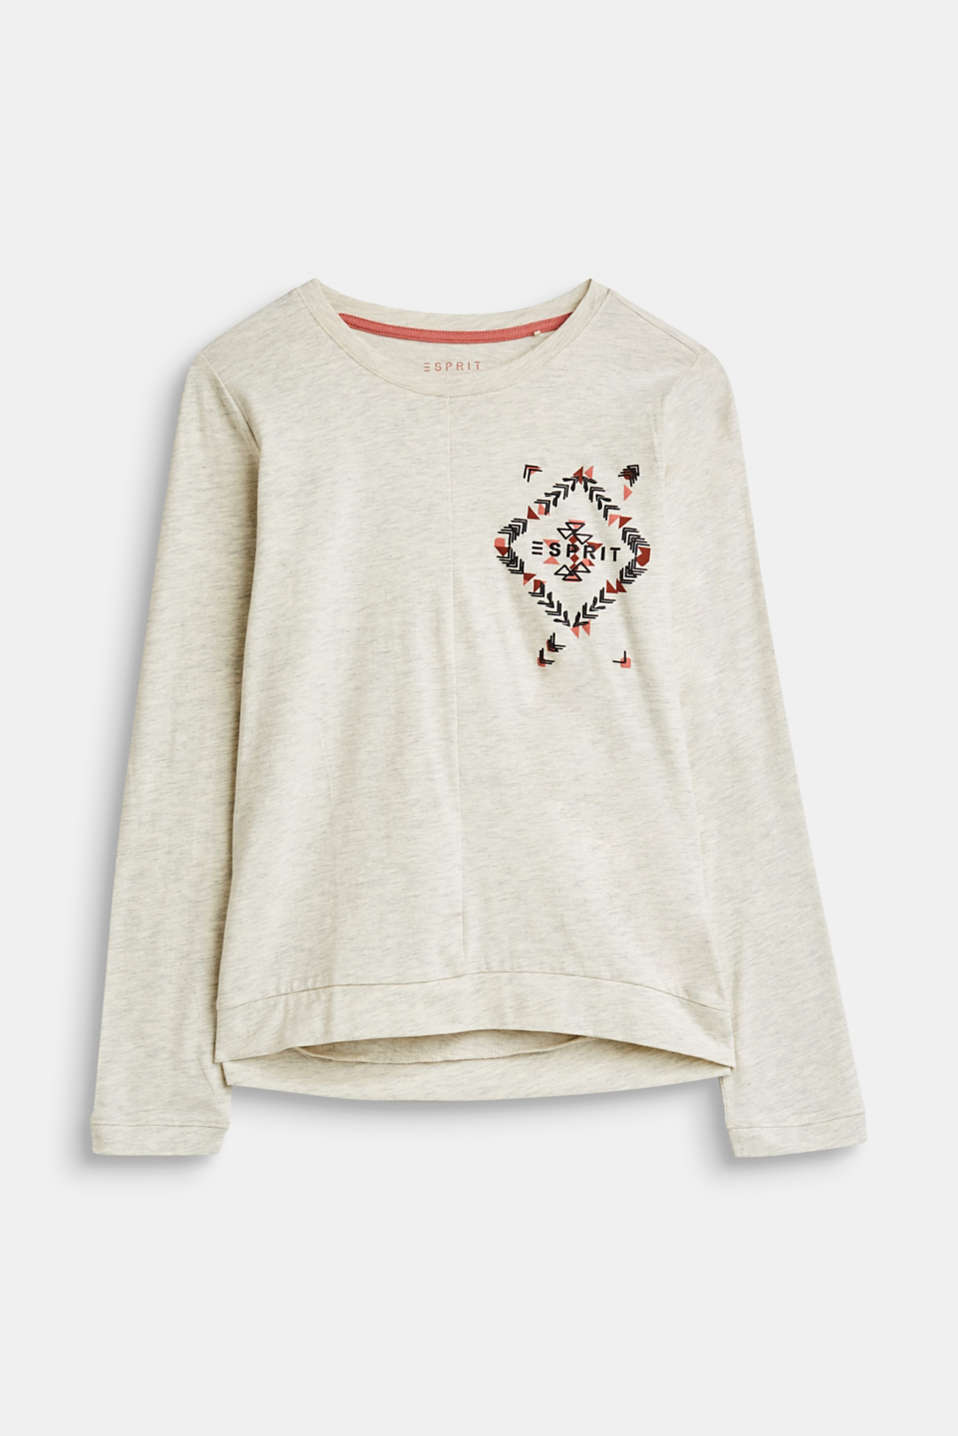 Esprit - Melange long sleeve top with a glittering tribal print